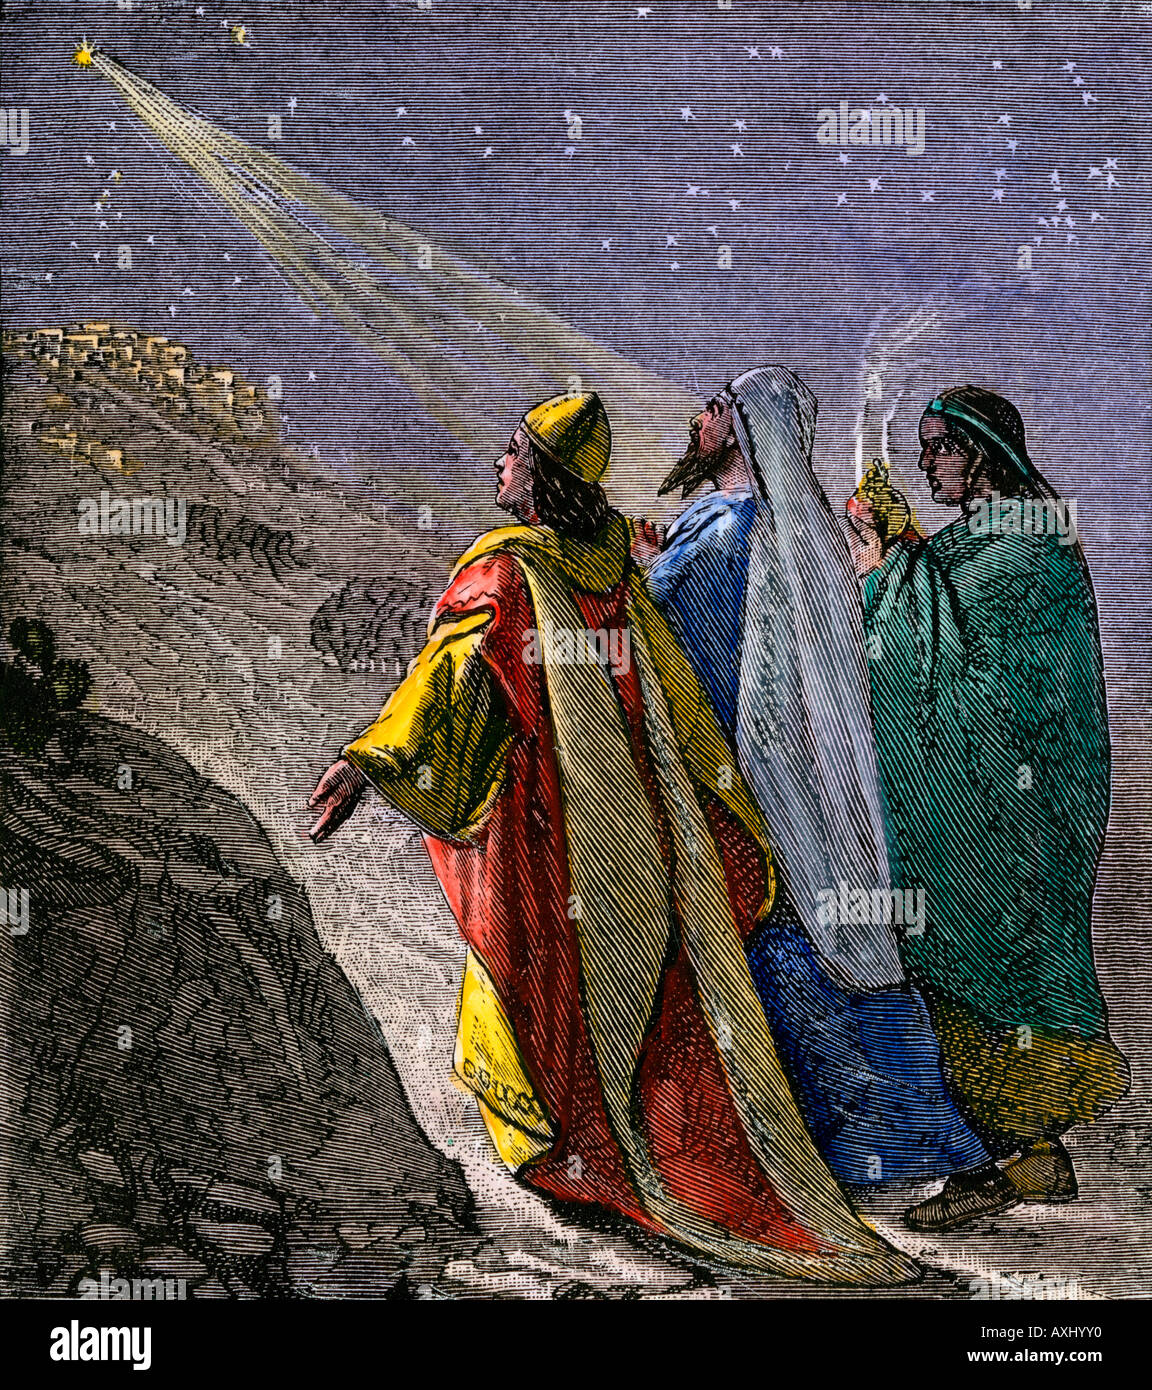 Three kings following the star to worship the baby Jesus. Hand-colored woodcut - Stock Image